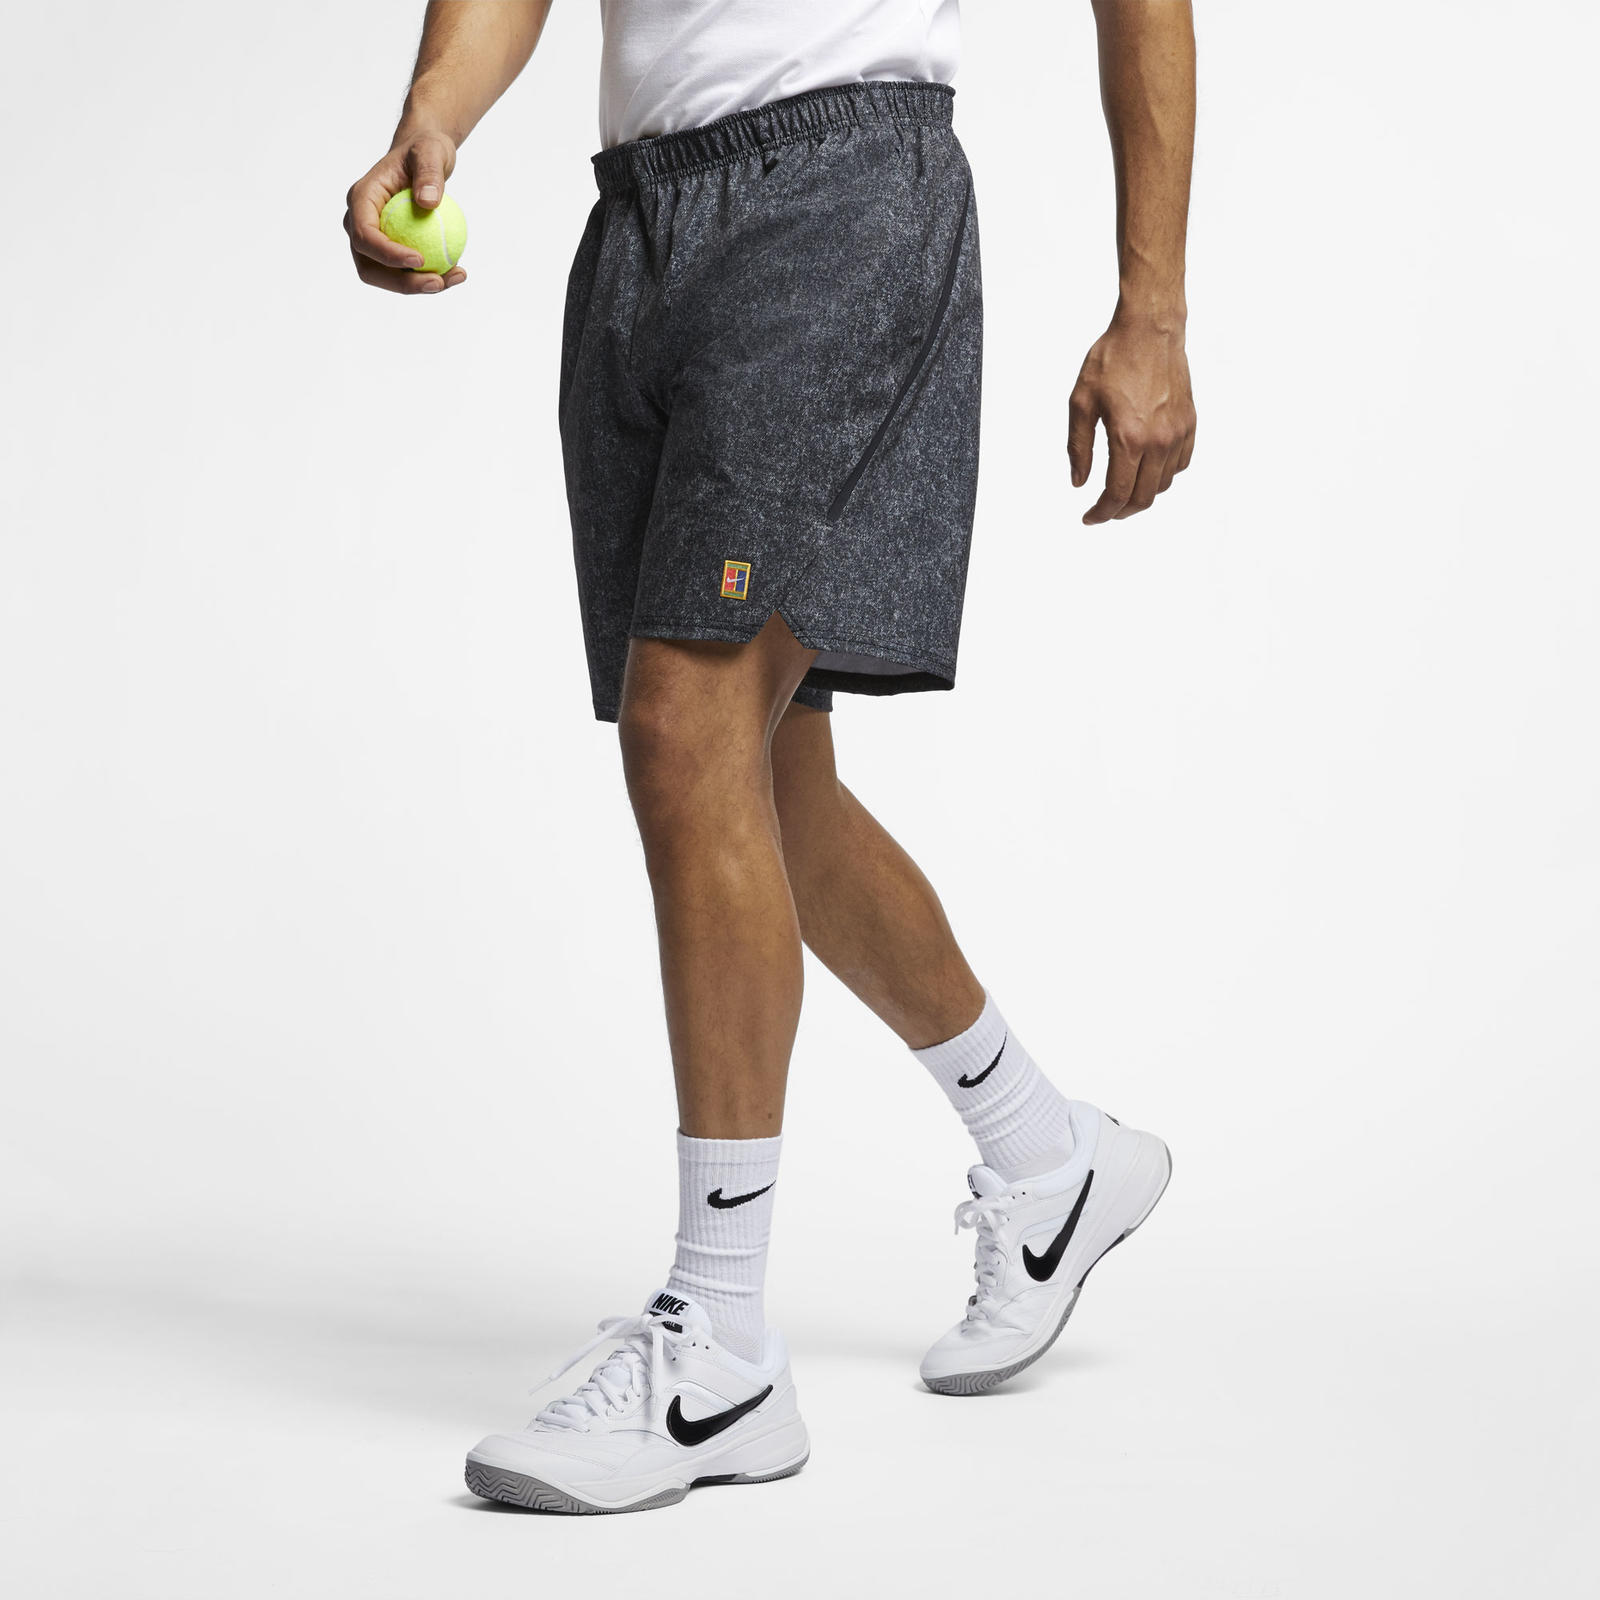 Vintage Vibes, Future Fabrics for the NikeCourt Melbourne Collection 24